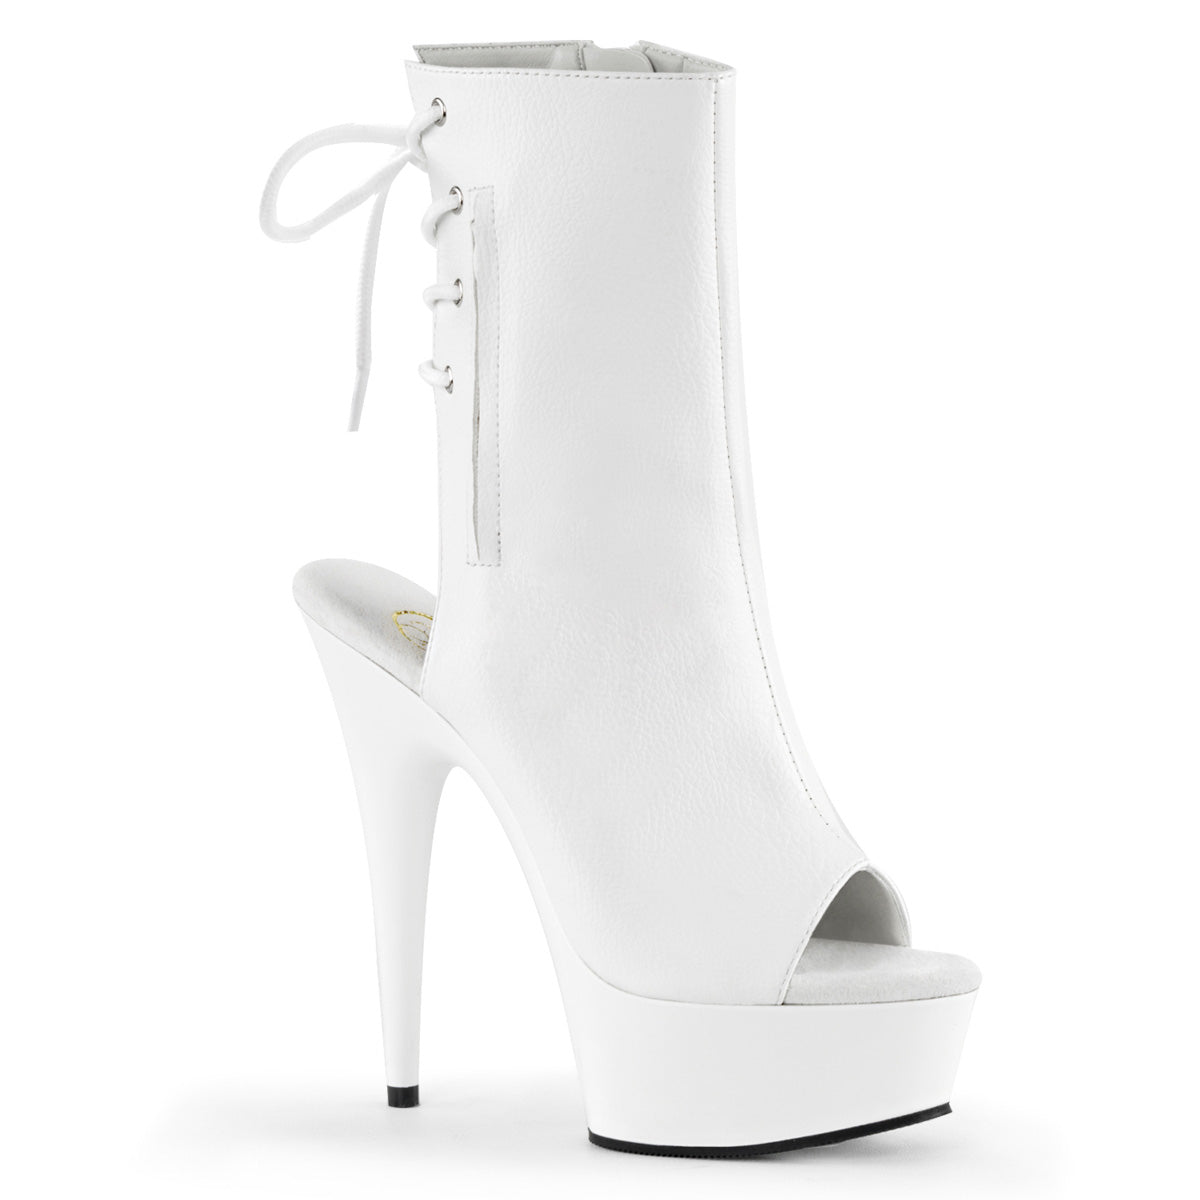 DELIGHT-1018 White Faux Leather/White